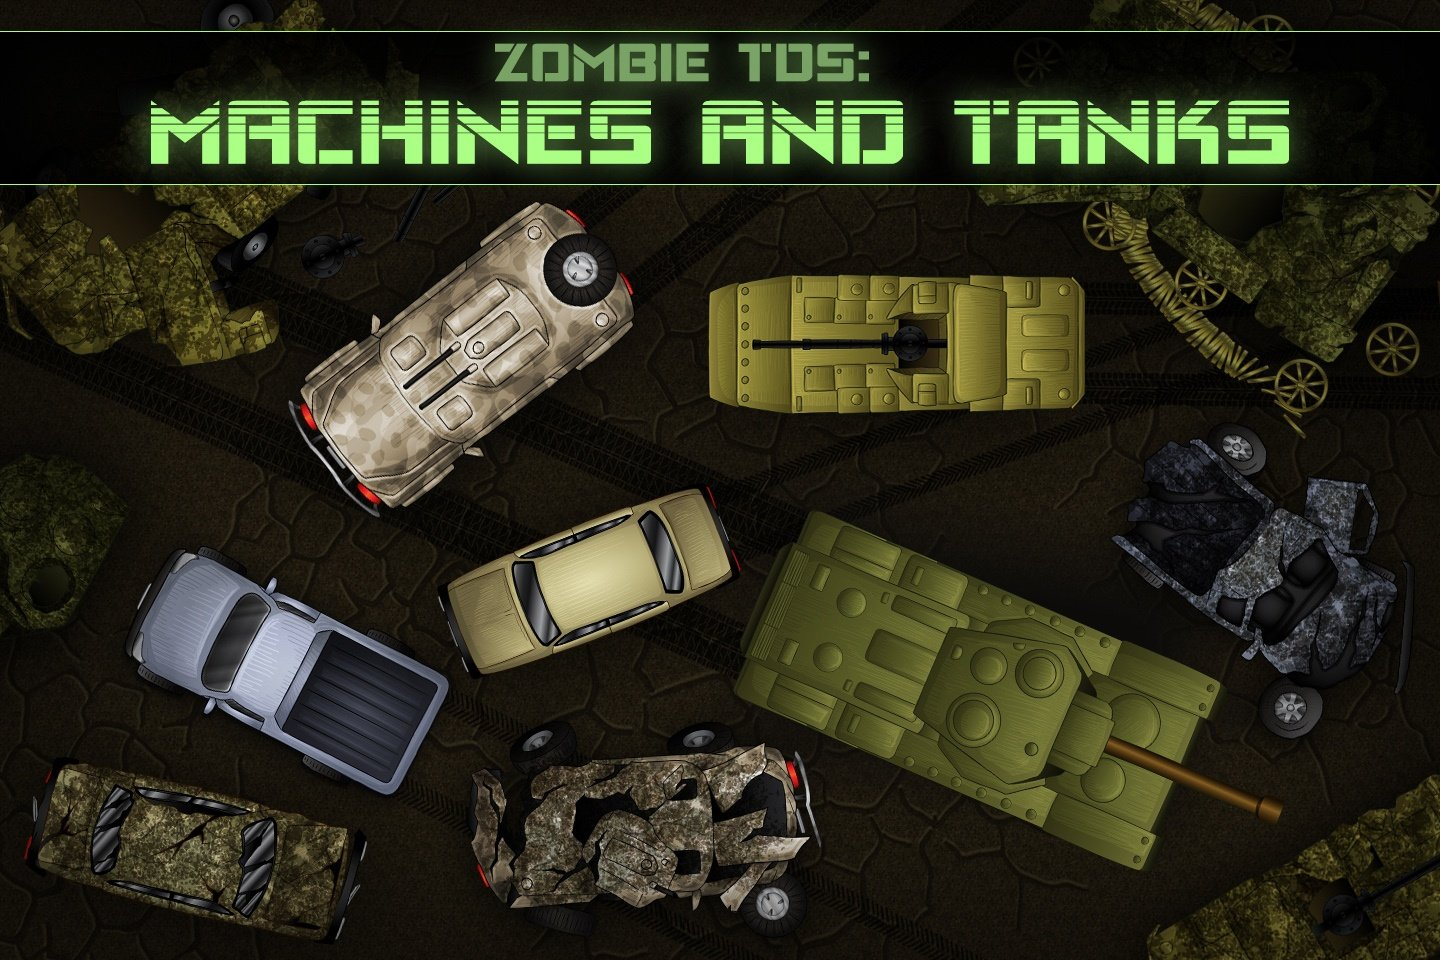 Zombie TDS Machines and Tanks